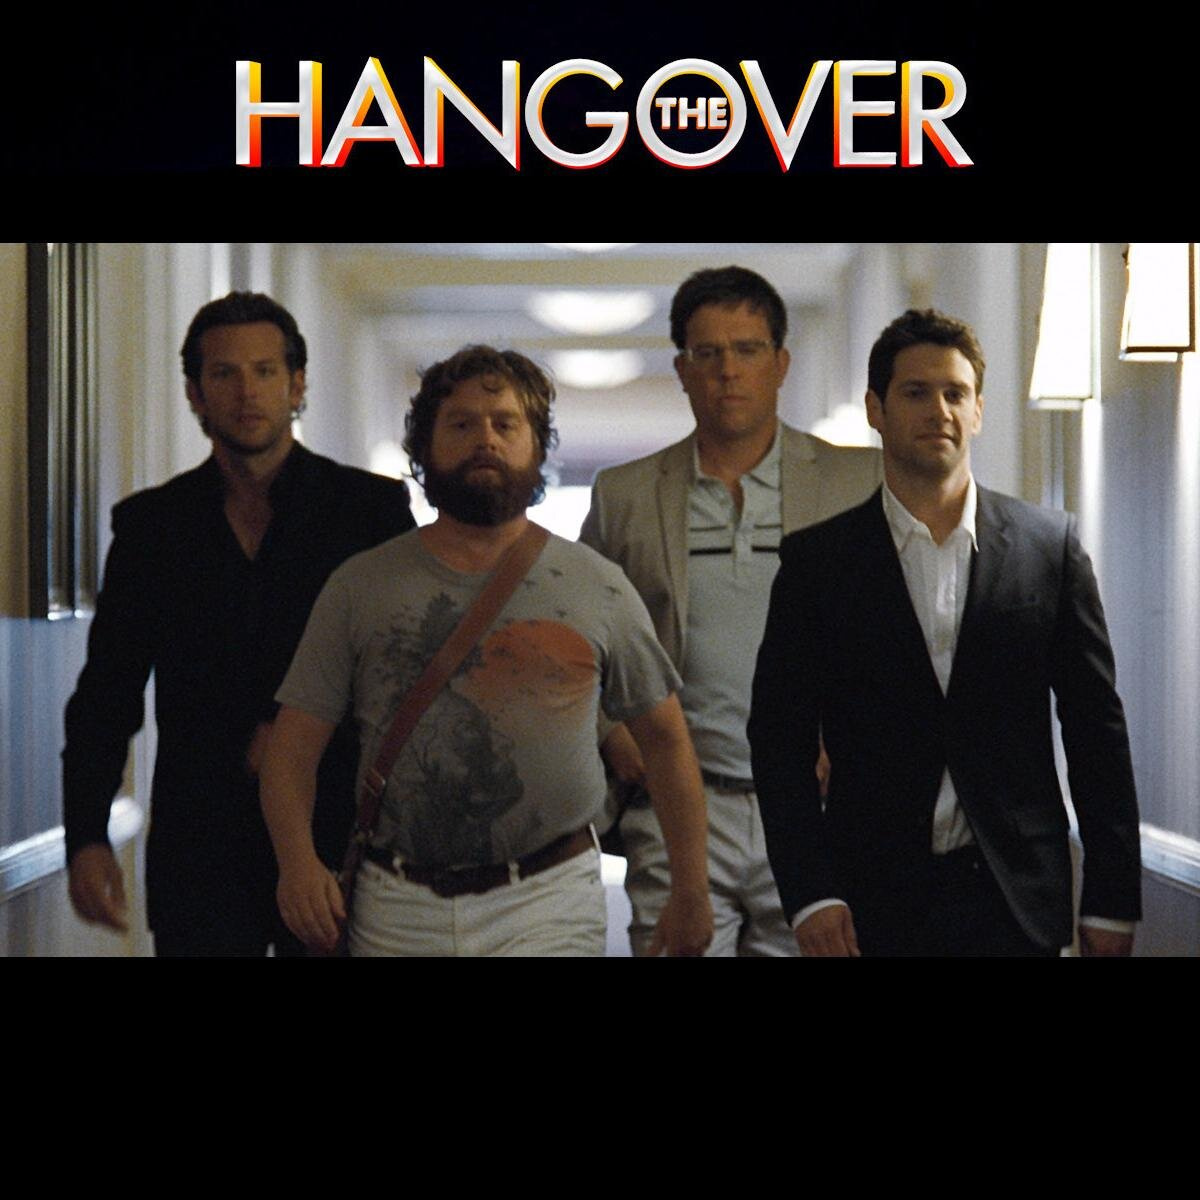 hangover movie review Todd phillips' new movie, the hangover, is as aptly titled as anything else released this year: with the exception of one character (more later in this review), i found this movie filled with male, sophomoric humor.